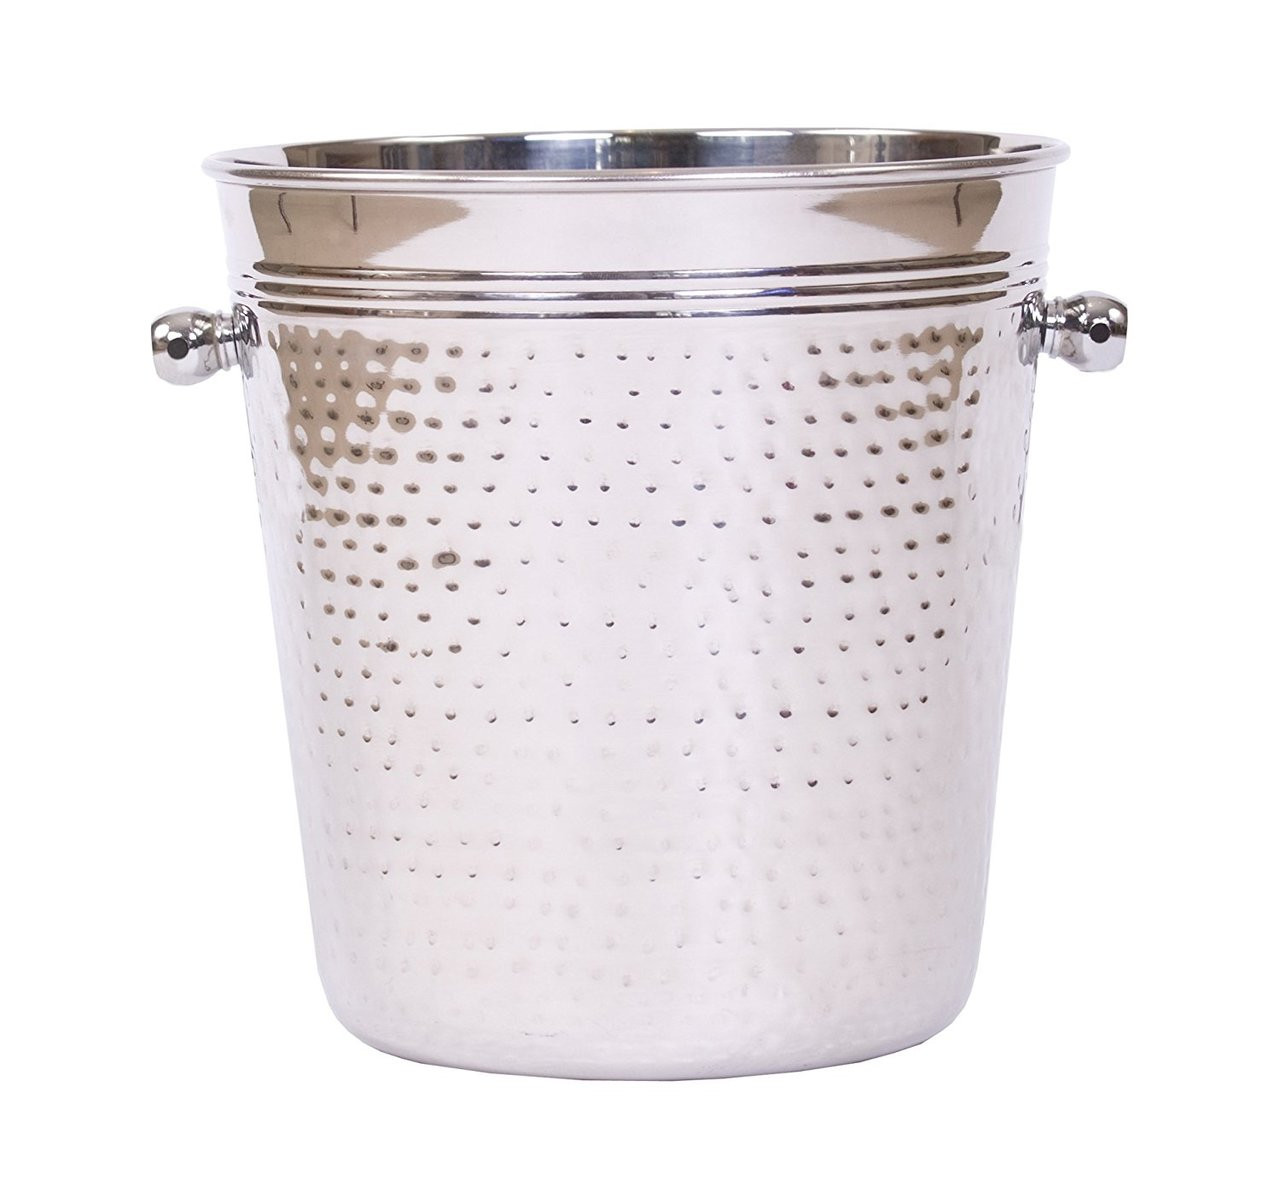 Stainless Steel Ice Bucket - Hammered Finish